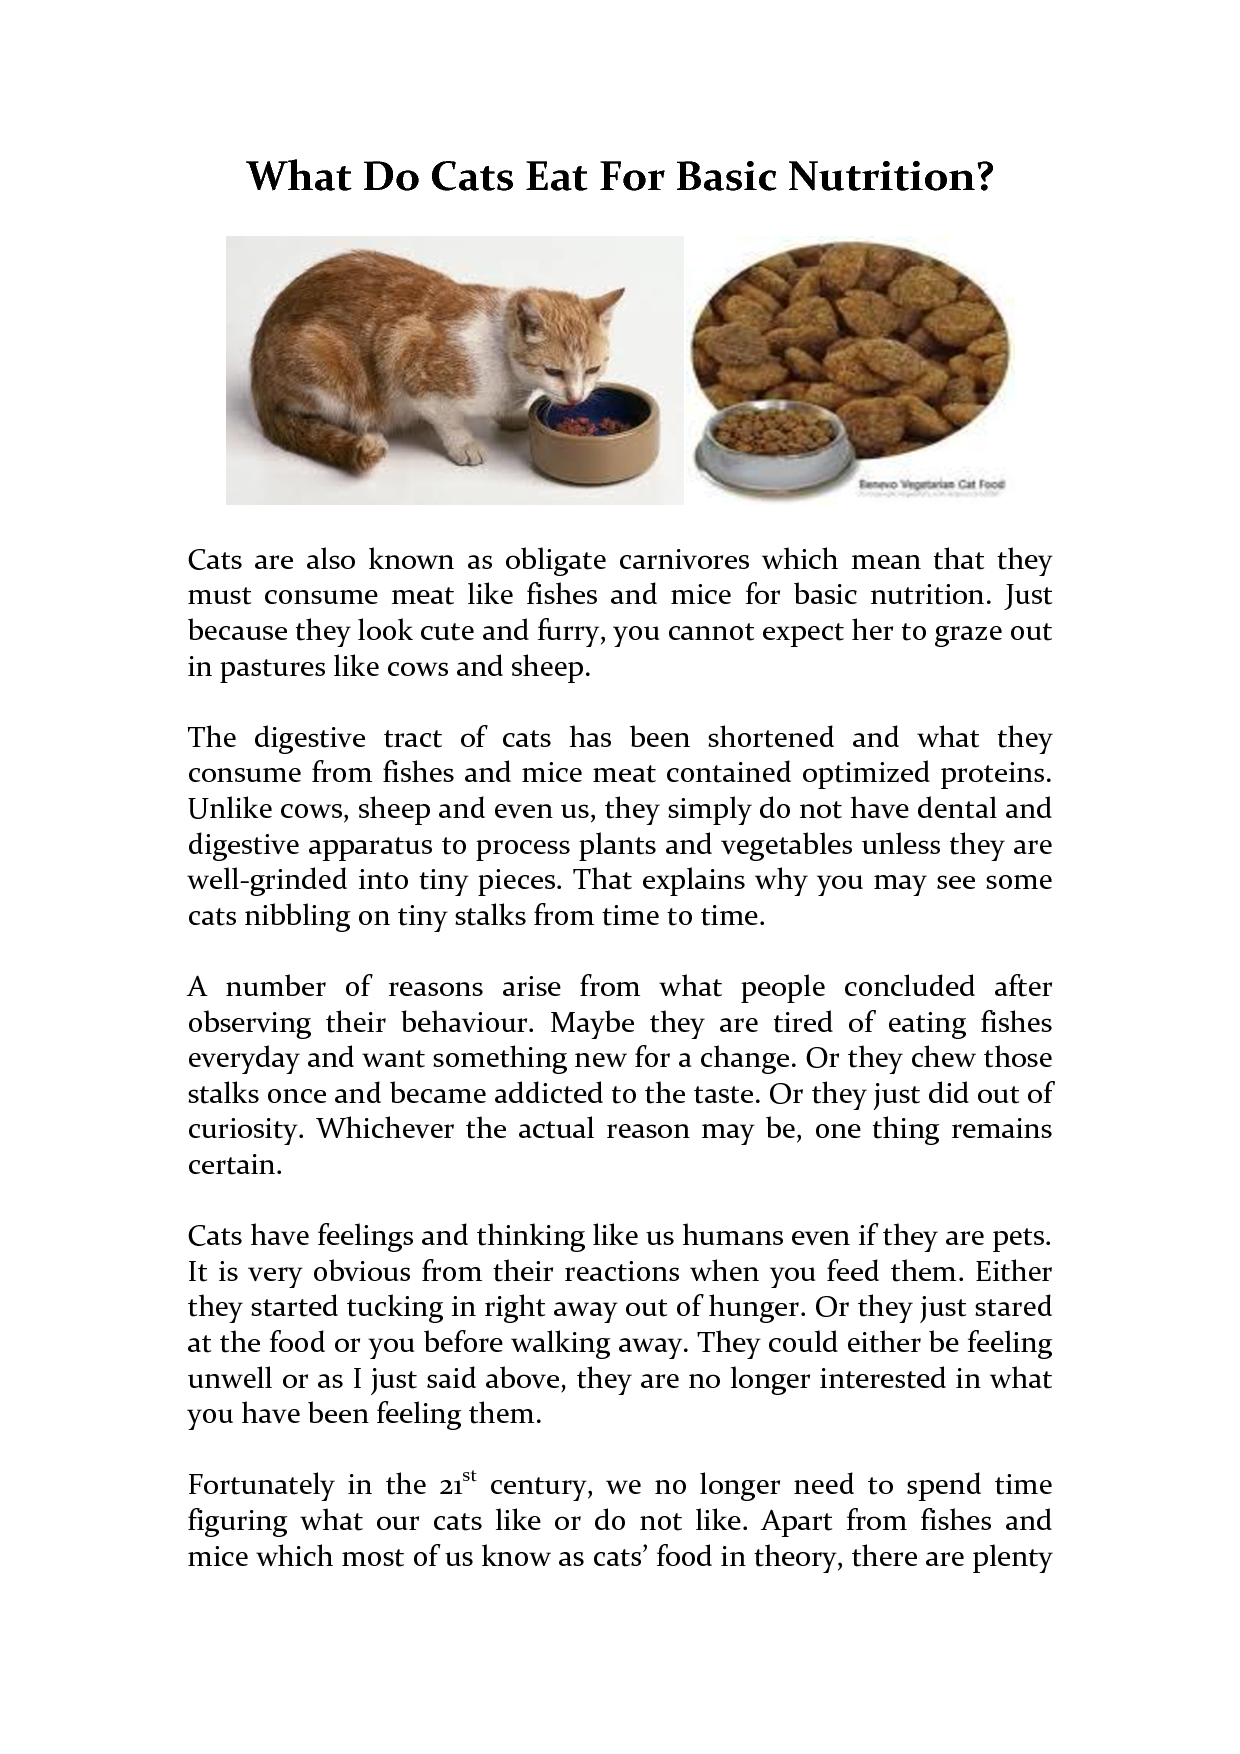 What Do Cats Eat For Basic Nutrition By Amuro7 Nutrition Feline